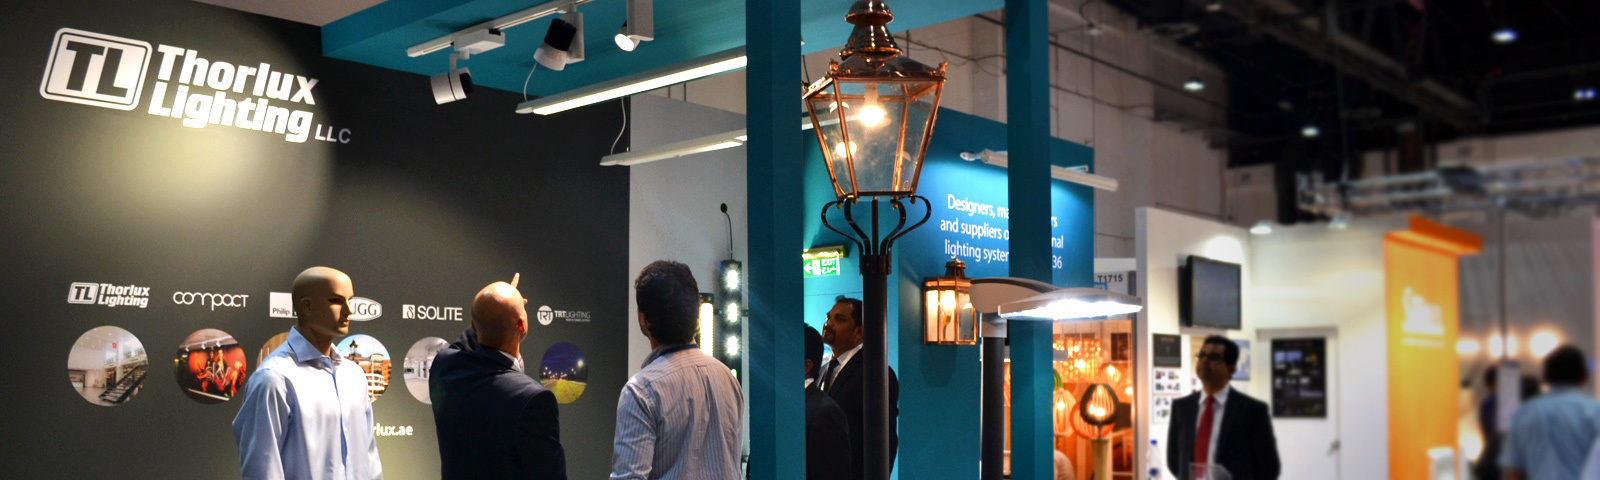 Thorlux Lighting LLC exhibited at Light ME 2014 gallery image